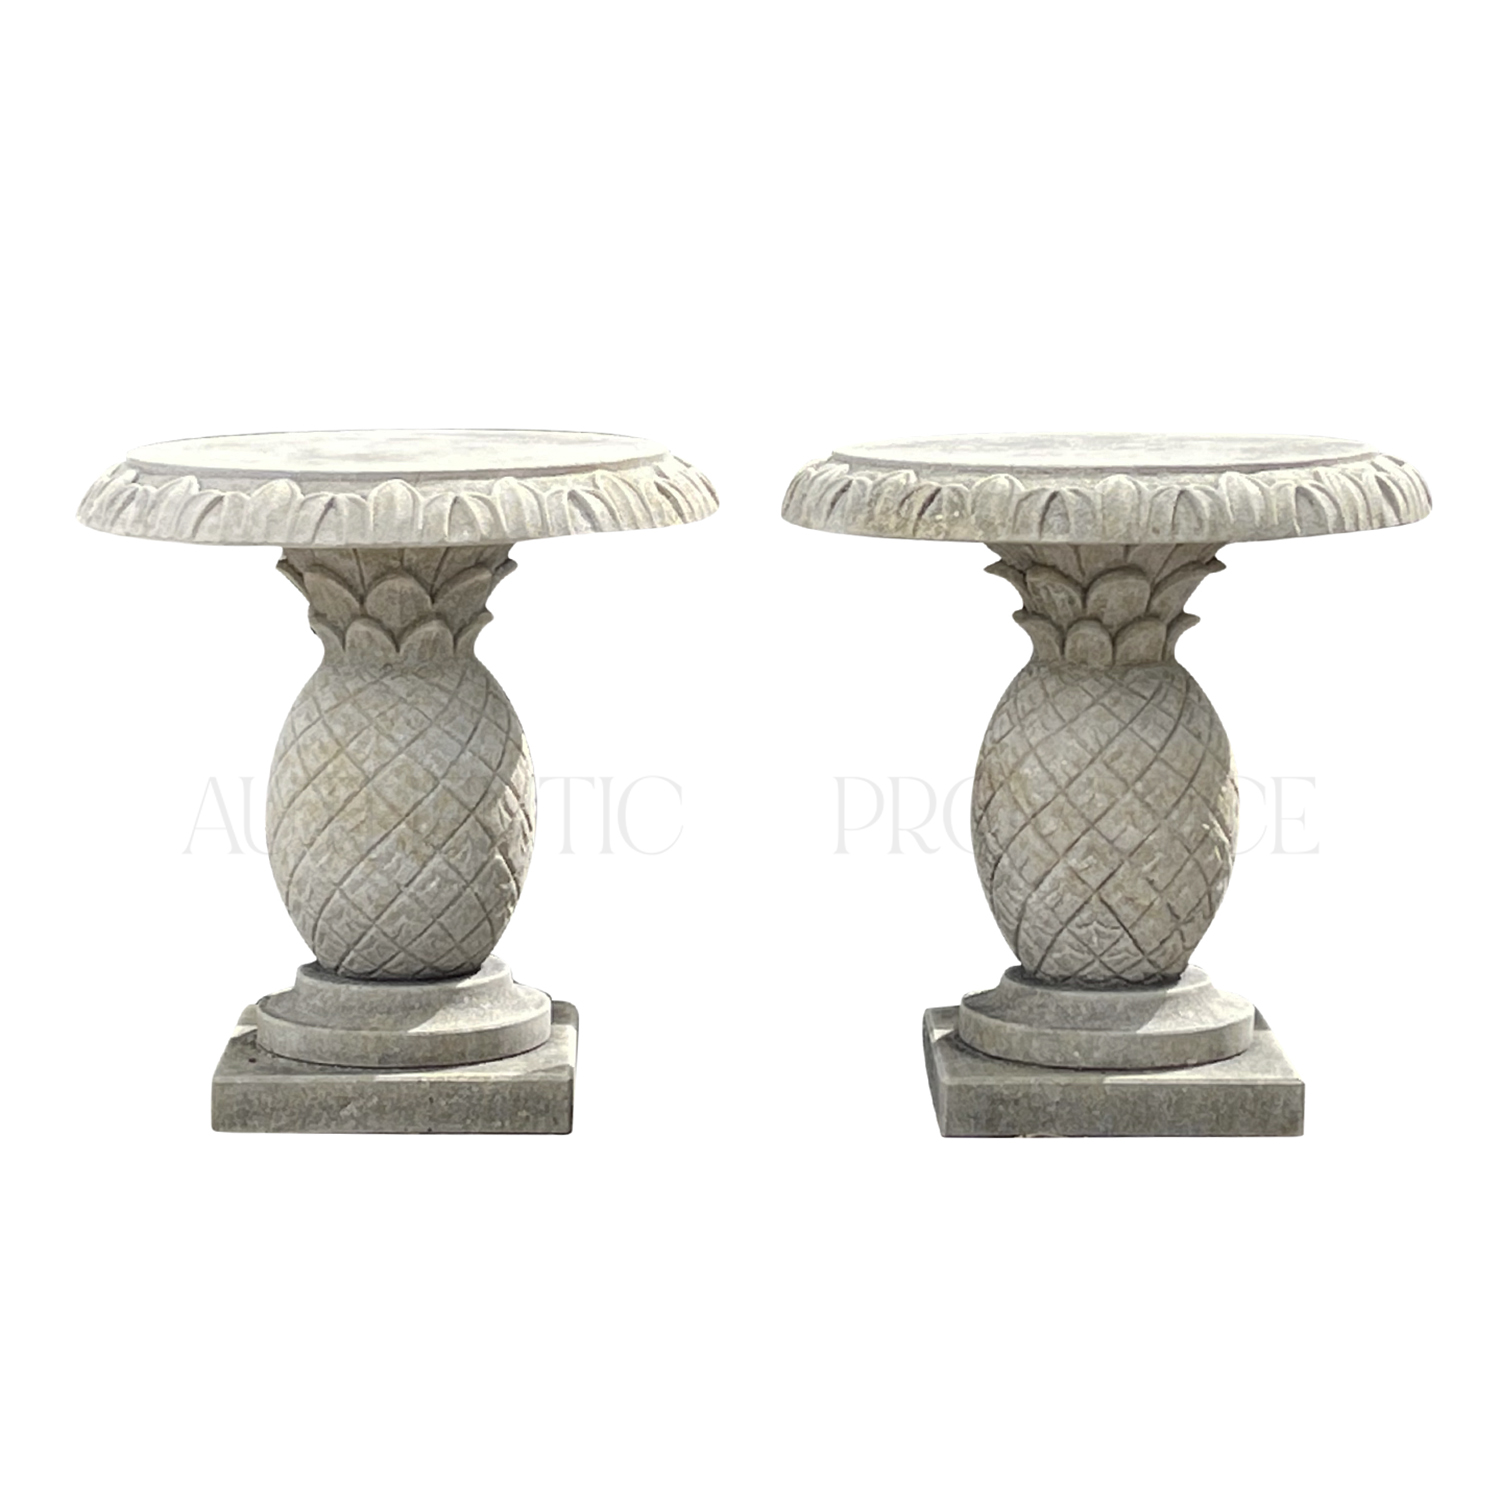 Pair of Pineapple Tables